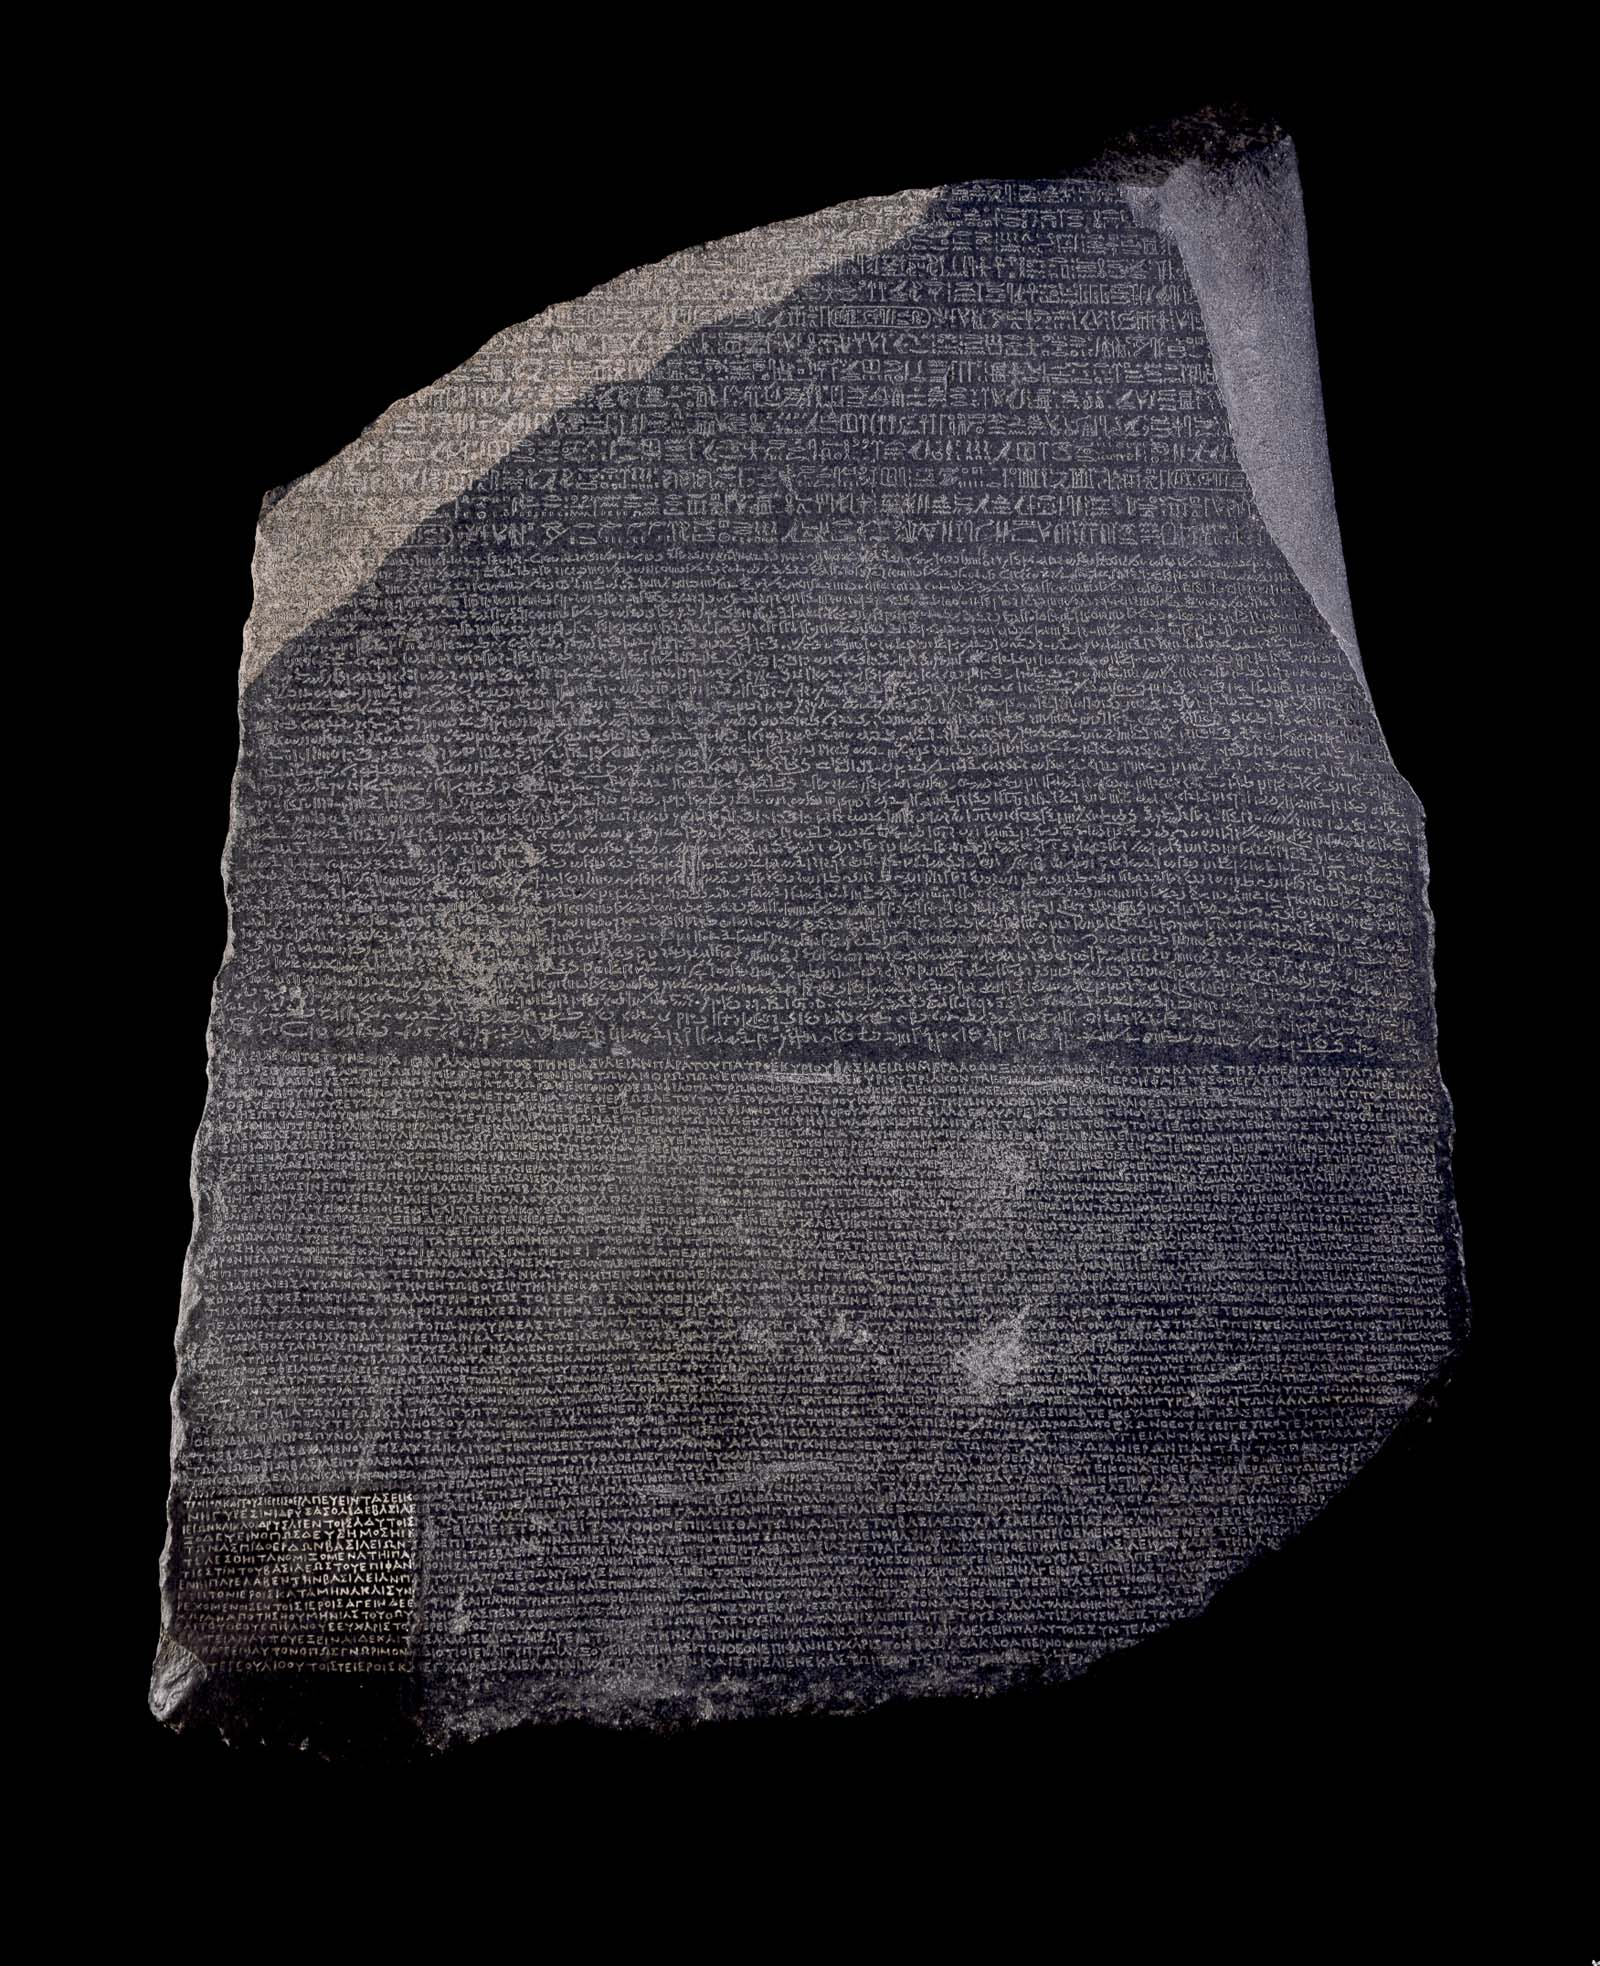 a photo of a stone carved in different heiroglyphs